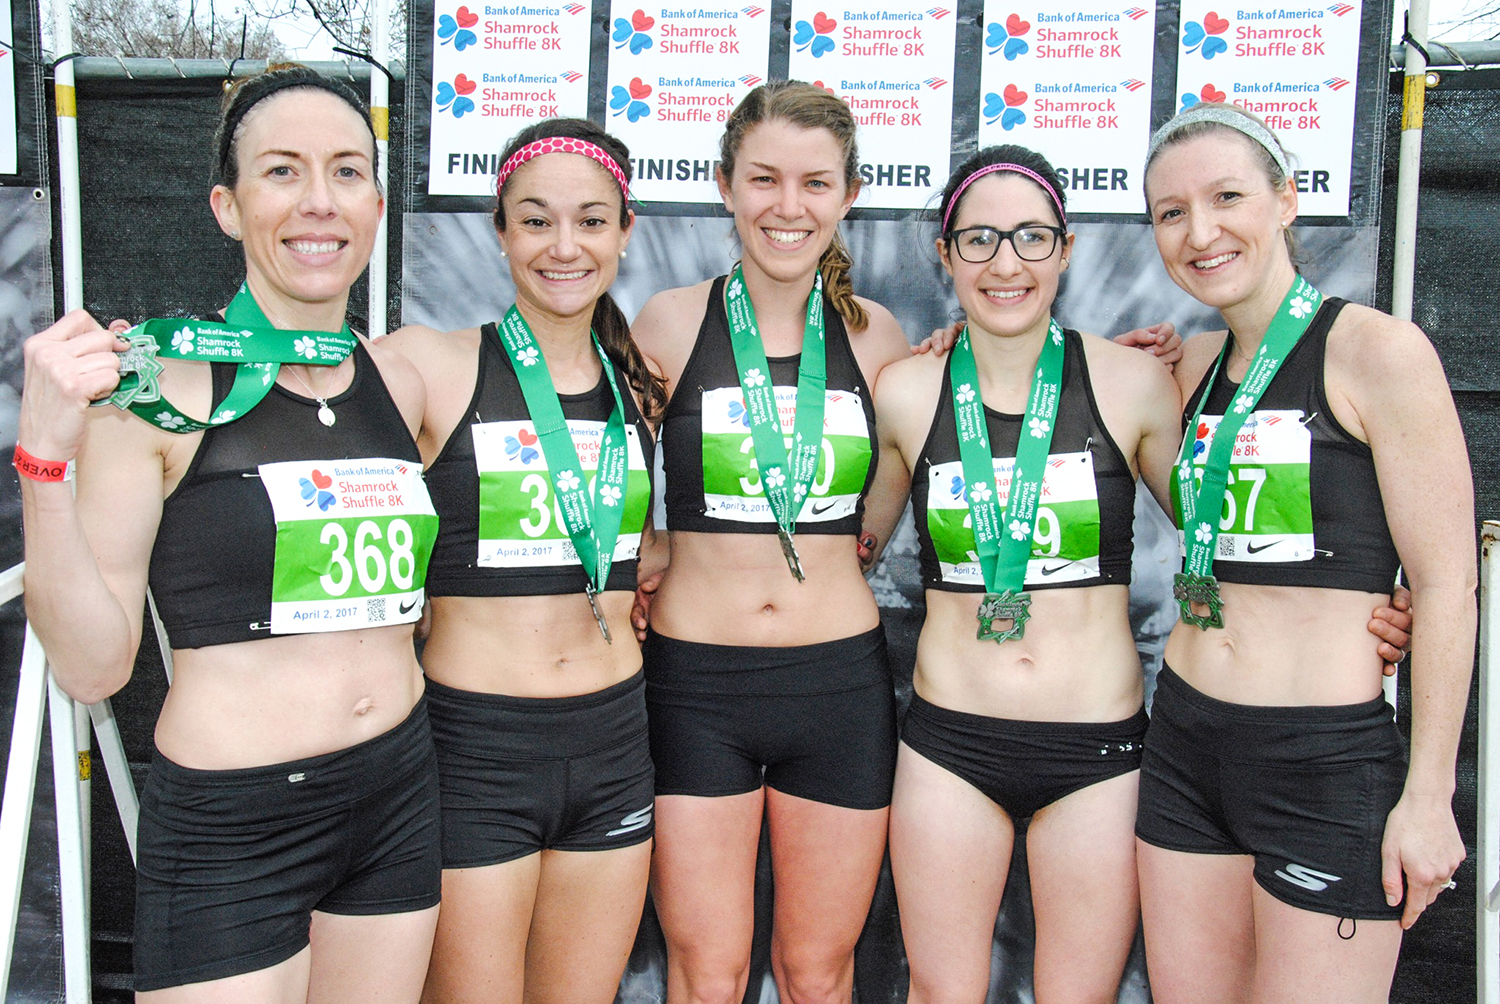 Willow Street teammates at the 2017 Shamrock Shuffle 8K in Chicago.